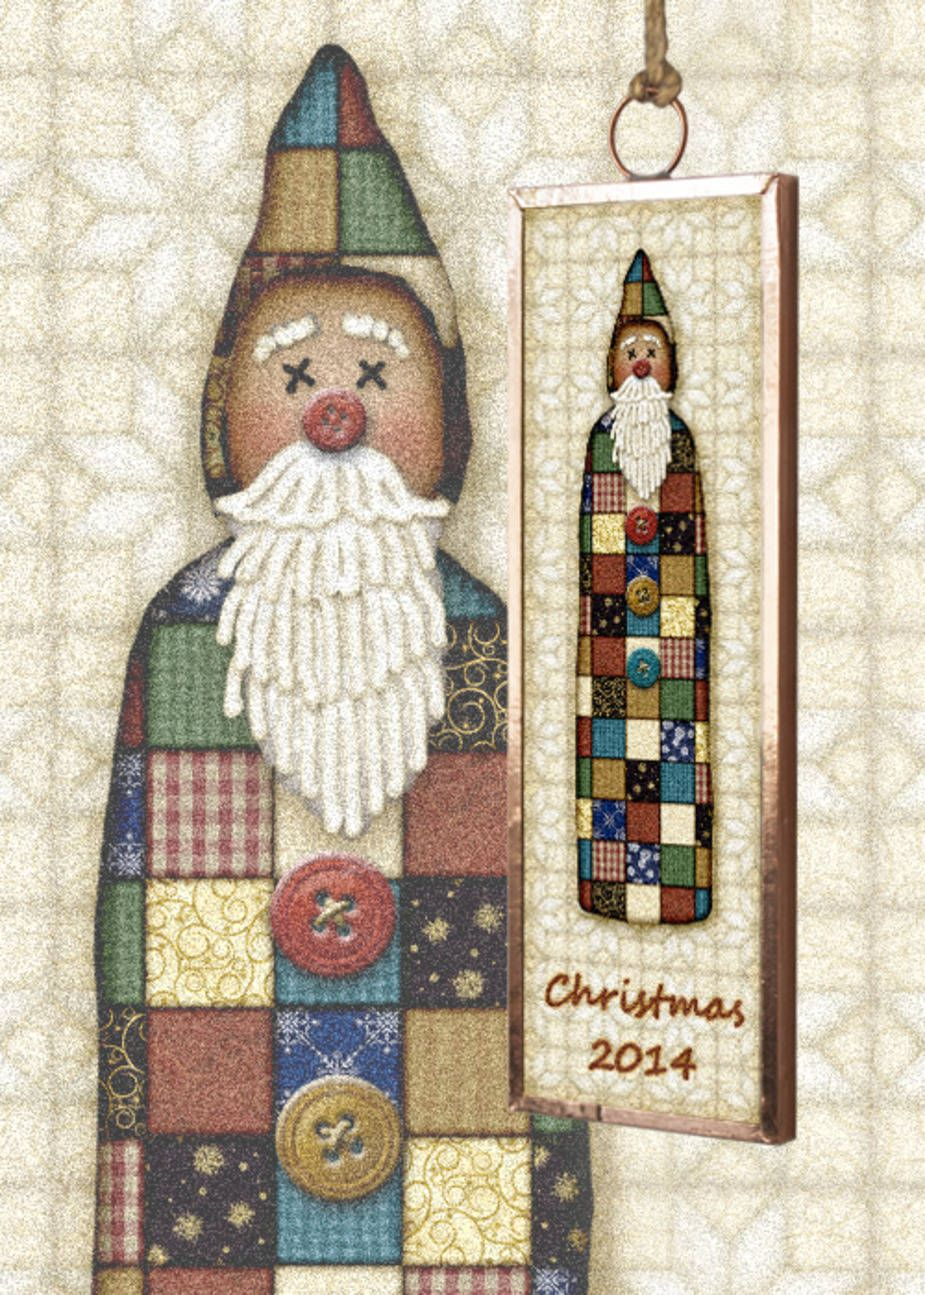 Gingerbread Studio has been creating collectible Christmas ornaments since 1999 This Santa is part of a set featuring a Santa Snowman Angel and a tree Collect all four Dated ornaments are a great gift for first home new baby first Christmas together! Attach to a bottle of wine with a big bow for a